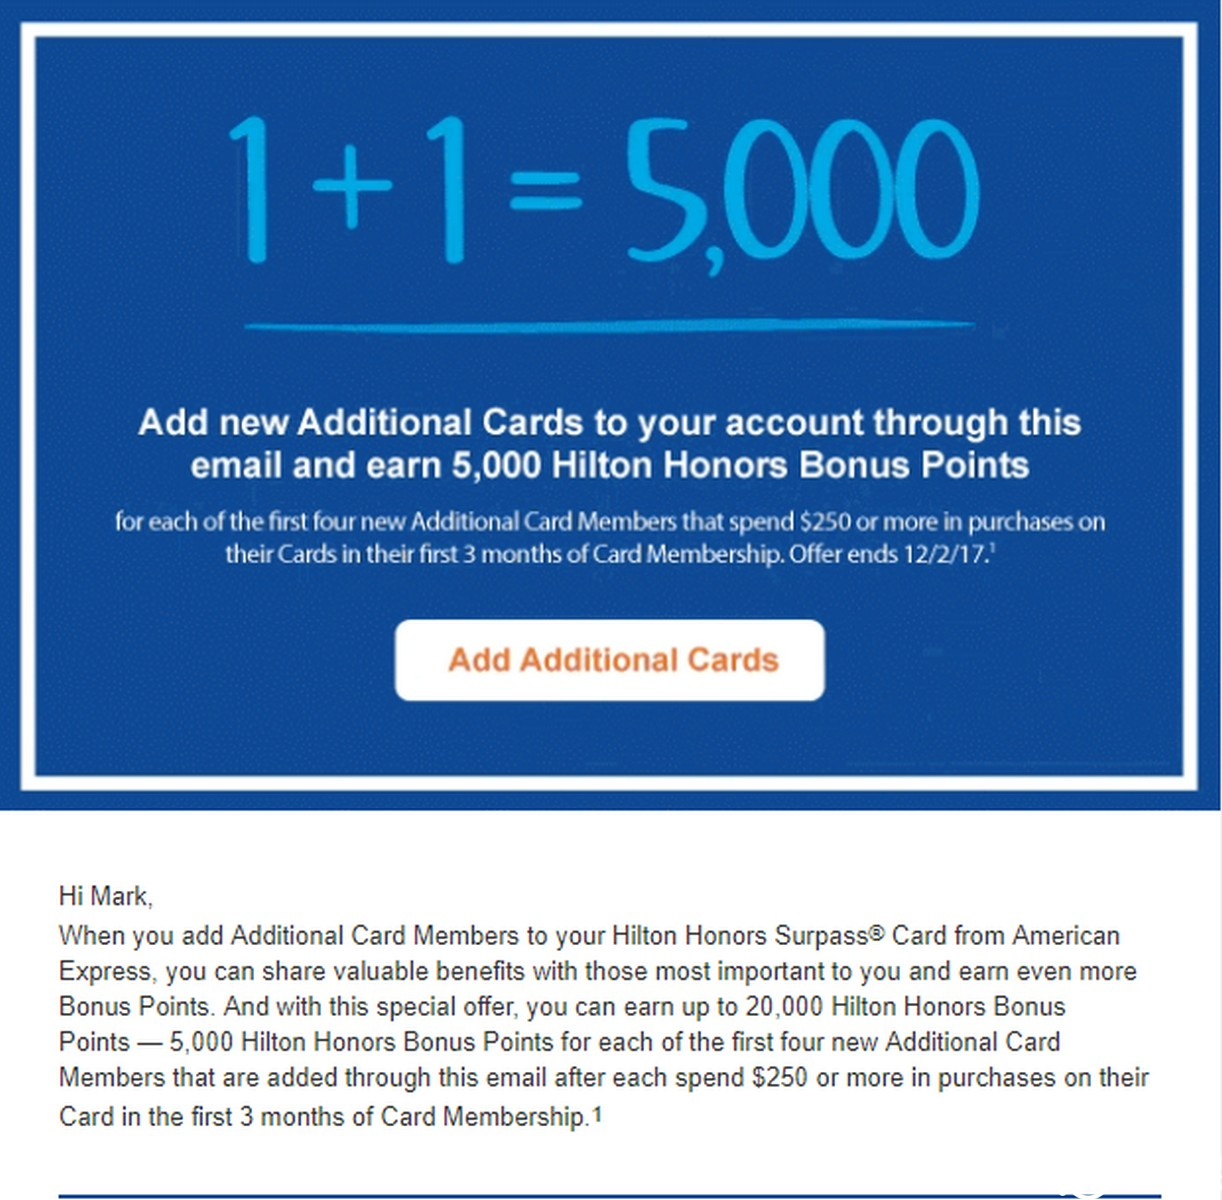 New American Express Surpass Authorized User Offer